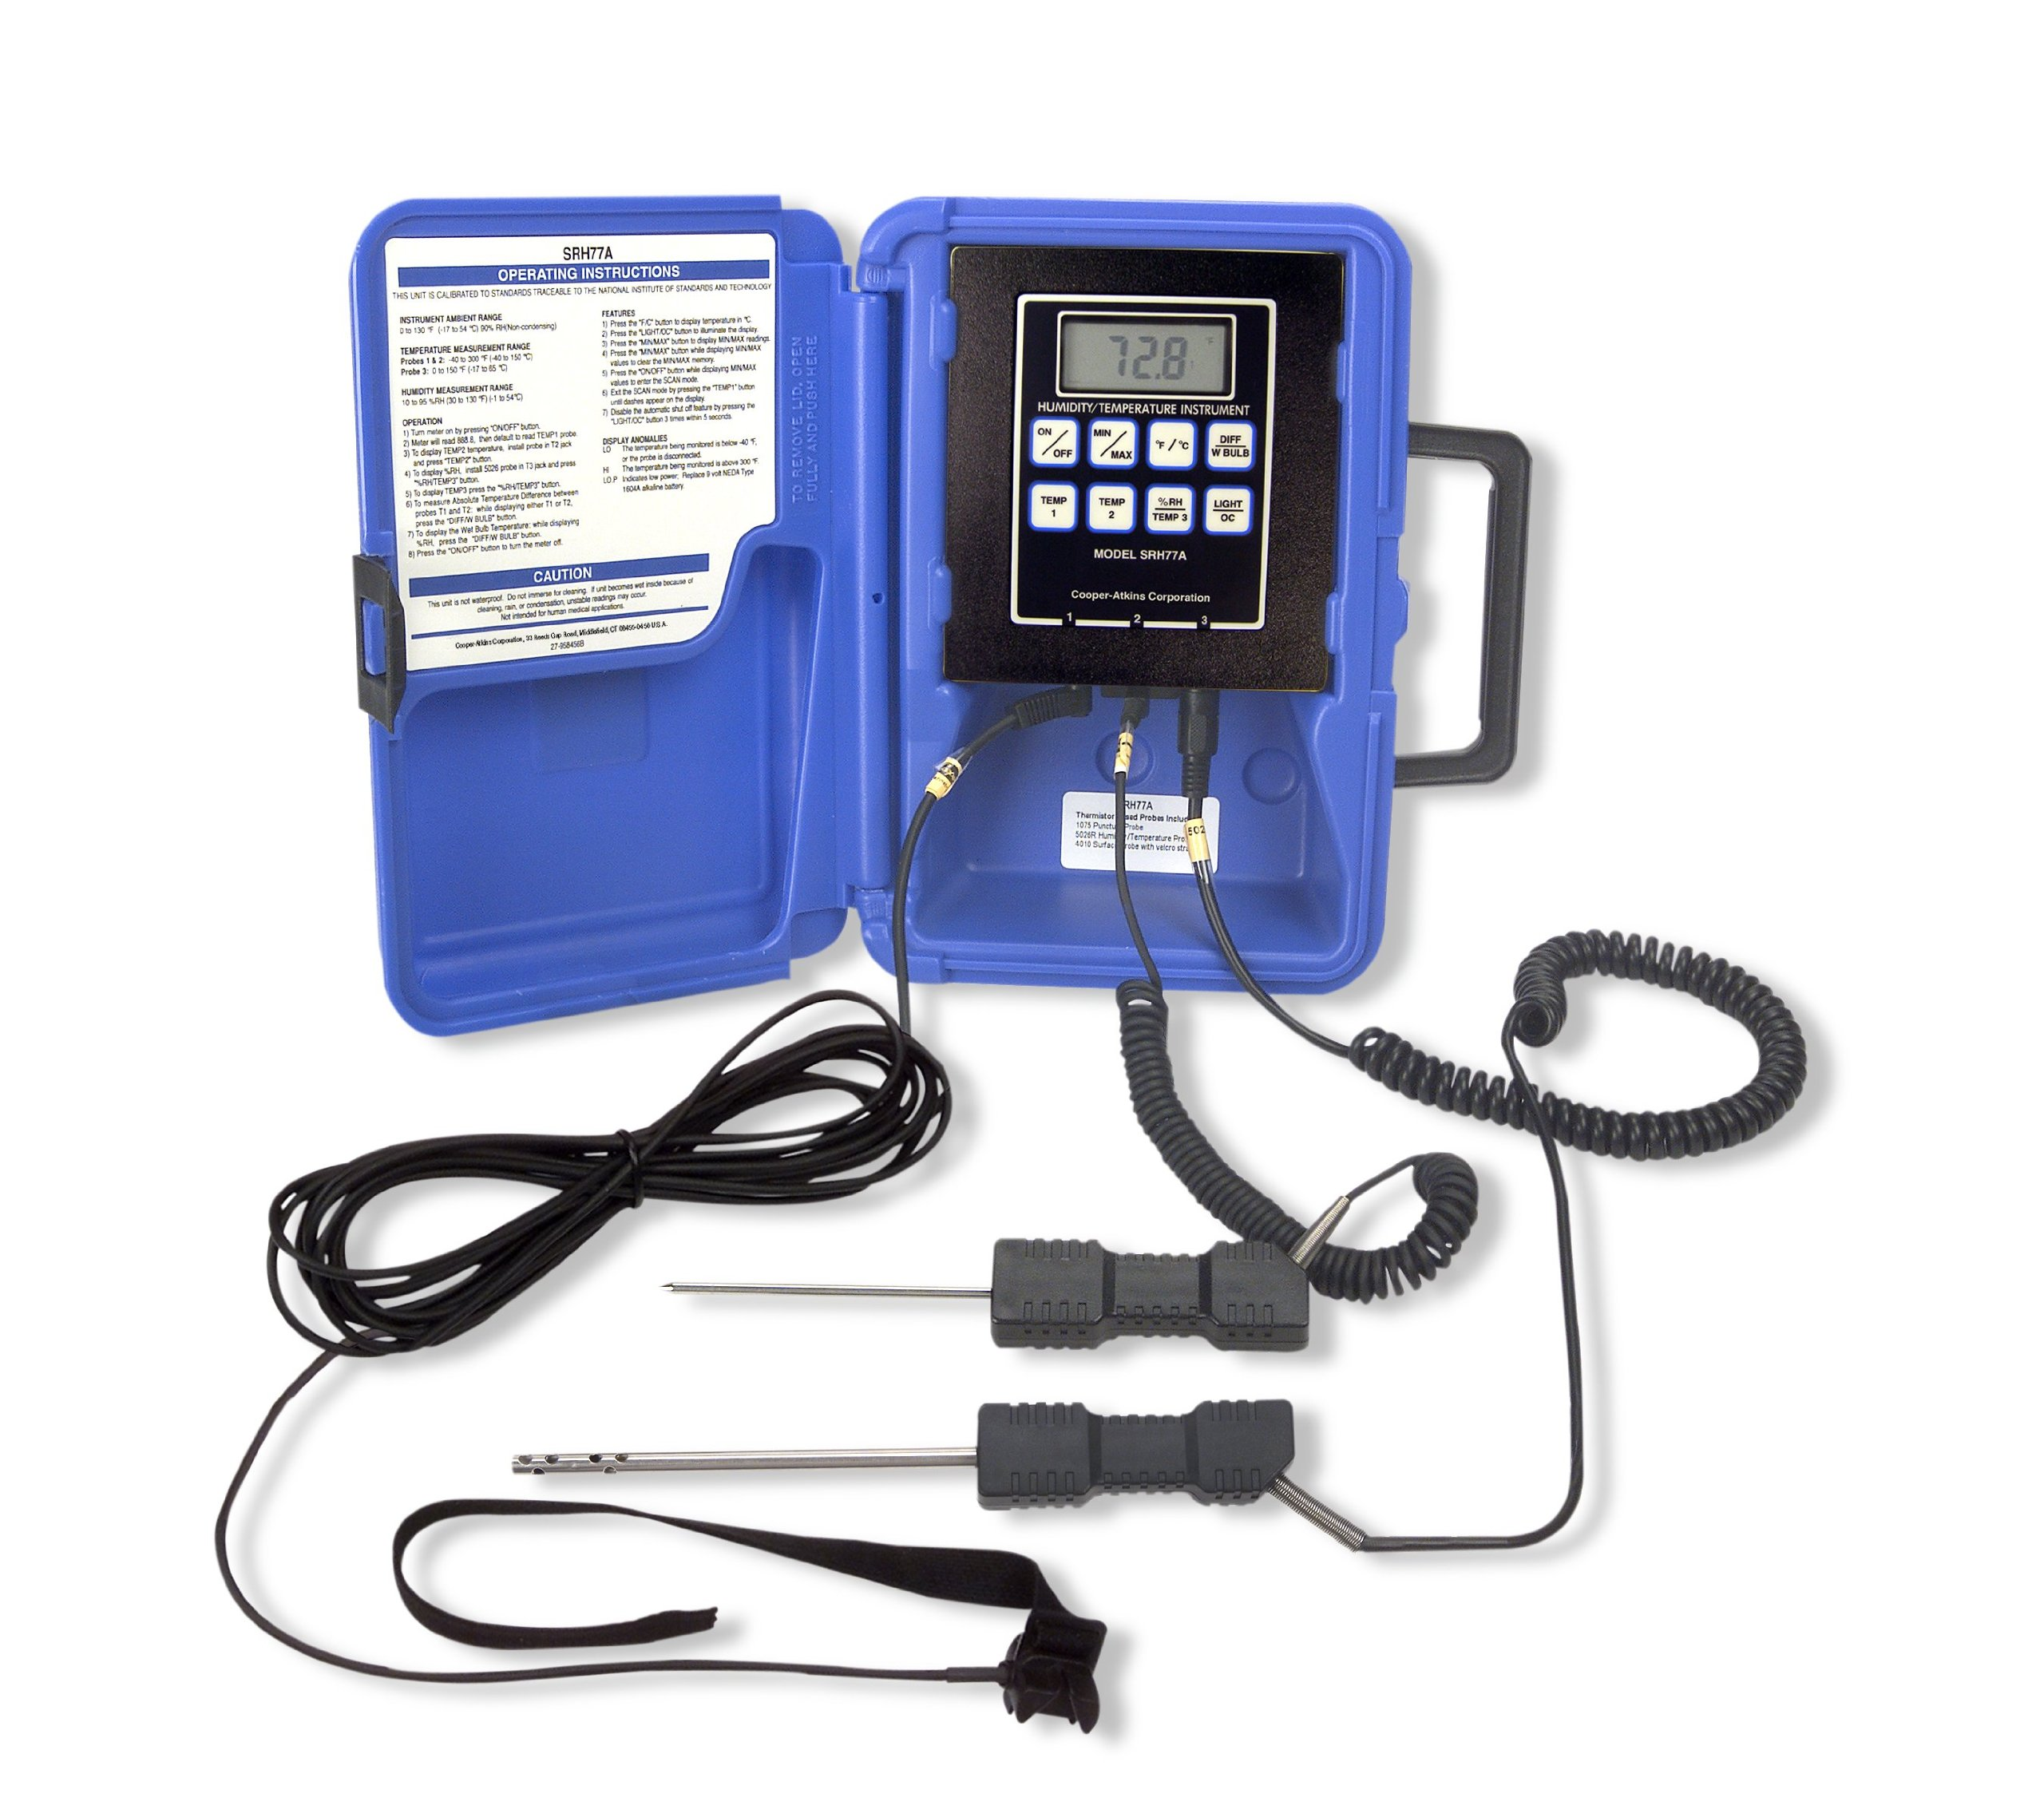 Cooper-Atkins SRH77A-E 1 and 2 Zone Temperature/Humidity Thermistor Instrument with 1075 General Purpose Puncture Probe, 4011 Pipe Strap Probe and 5028 Humidity Probe, -40°F to 300°F Temperature Range by Cooper